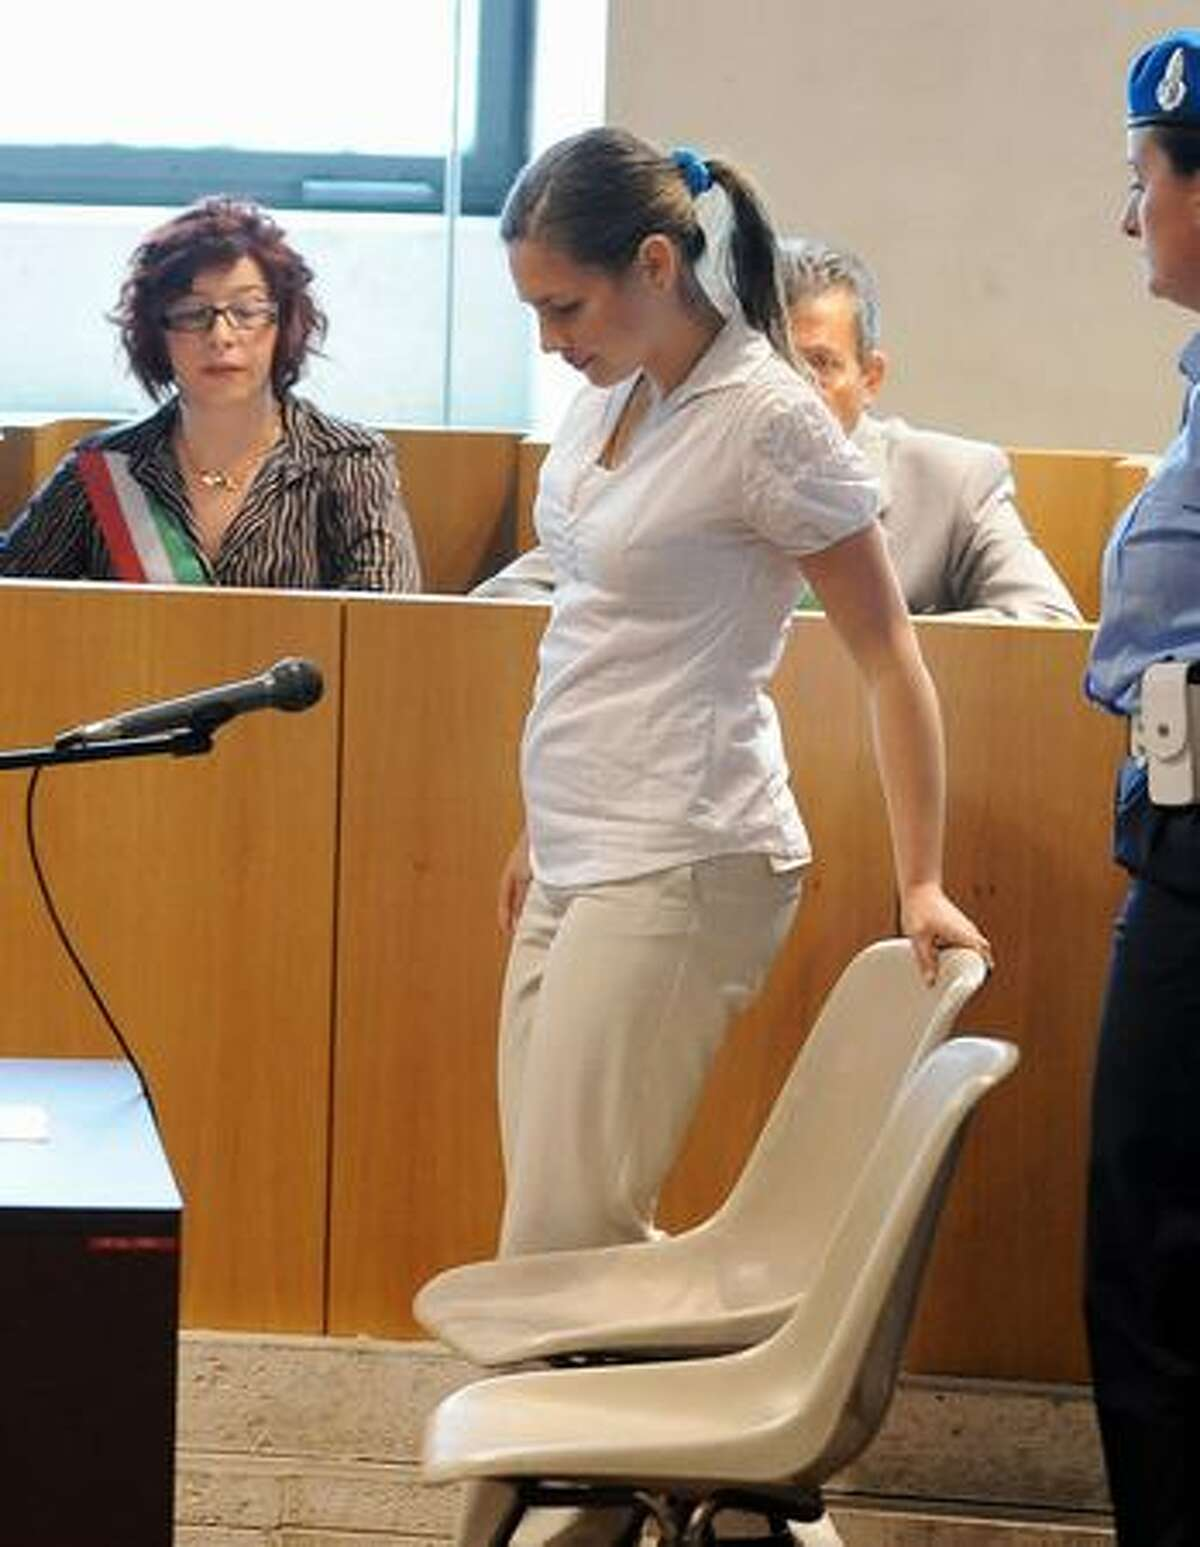 U.S.'s Amanda Knox, accused of killing her British housemate two-years ago, takes place for her trial on Friday in Perugia. Knox will testify during this court session for the first time in her sex-murder trial, with the American accused of taking part in the 2007 killing of her British housemate Meredith Kercher in Italy.